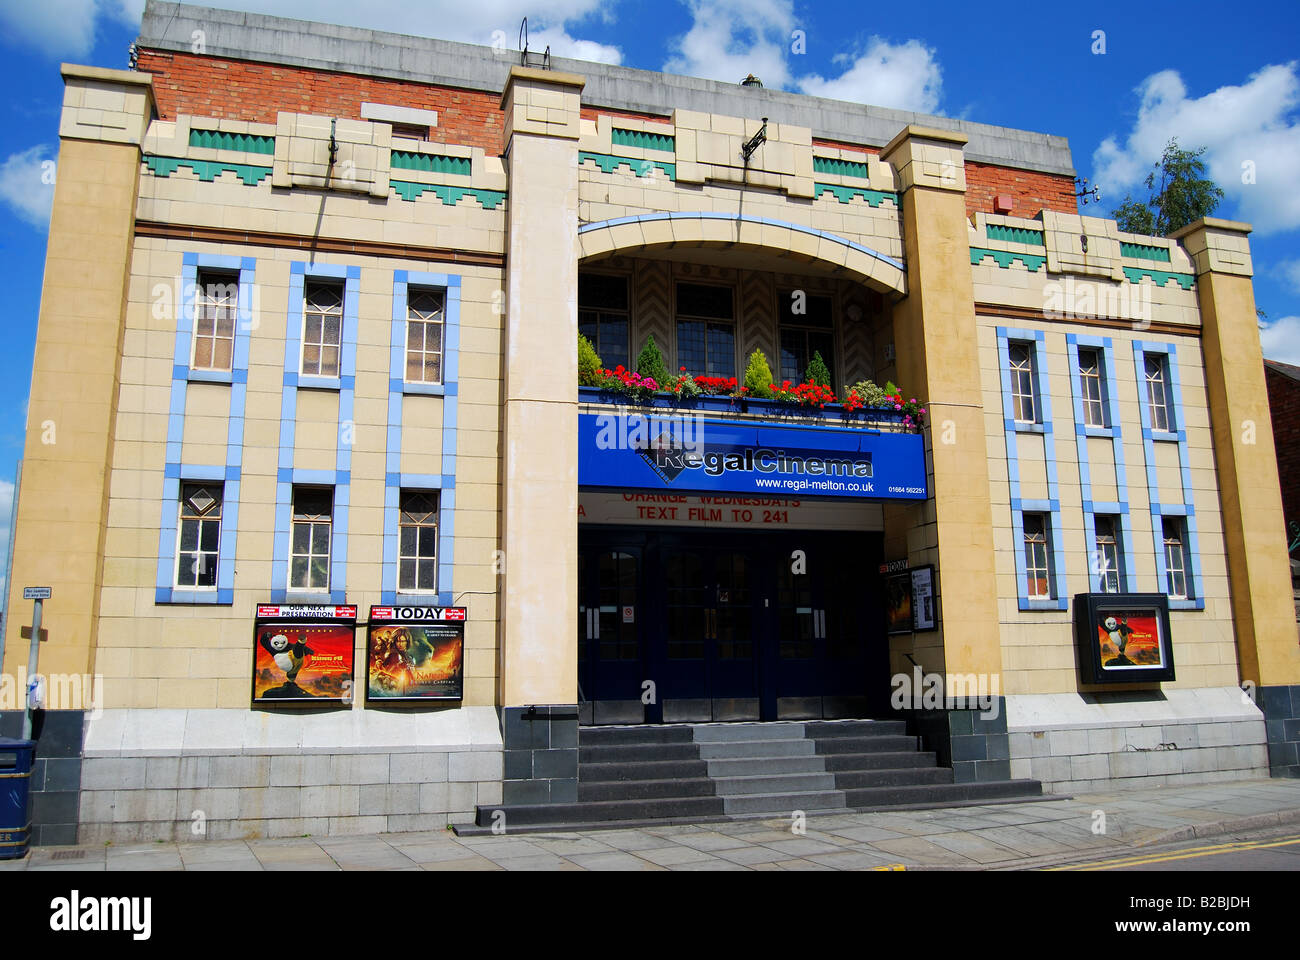 Regal Cinema edificio Art Deco, King Street, Melton Mowbray, Leicestershire, Inglaterra, Reino Unido Imagen De Stock